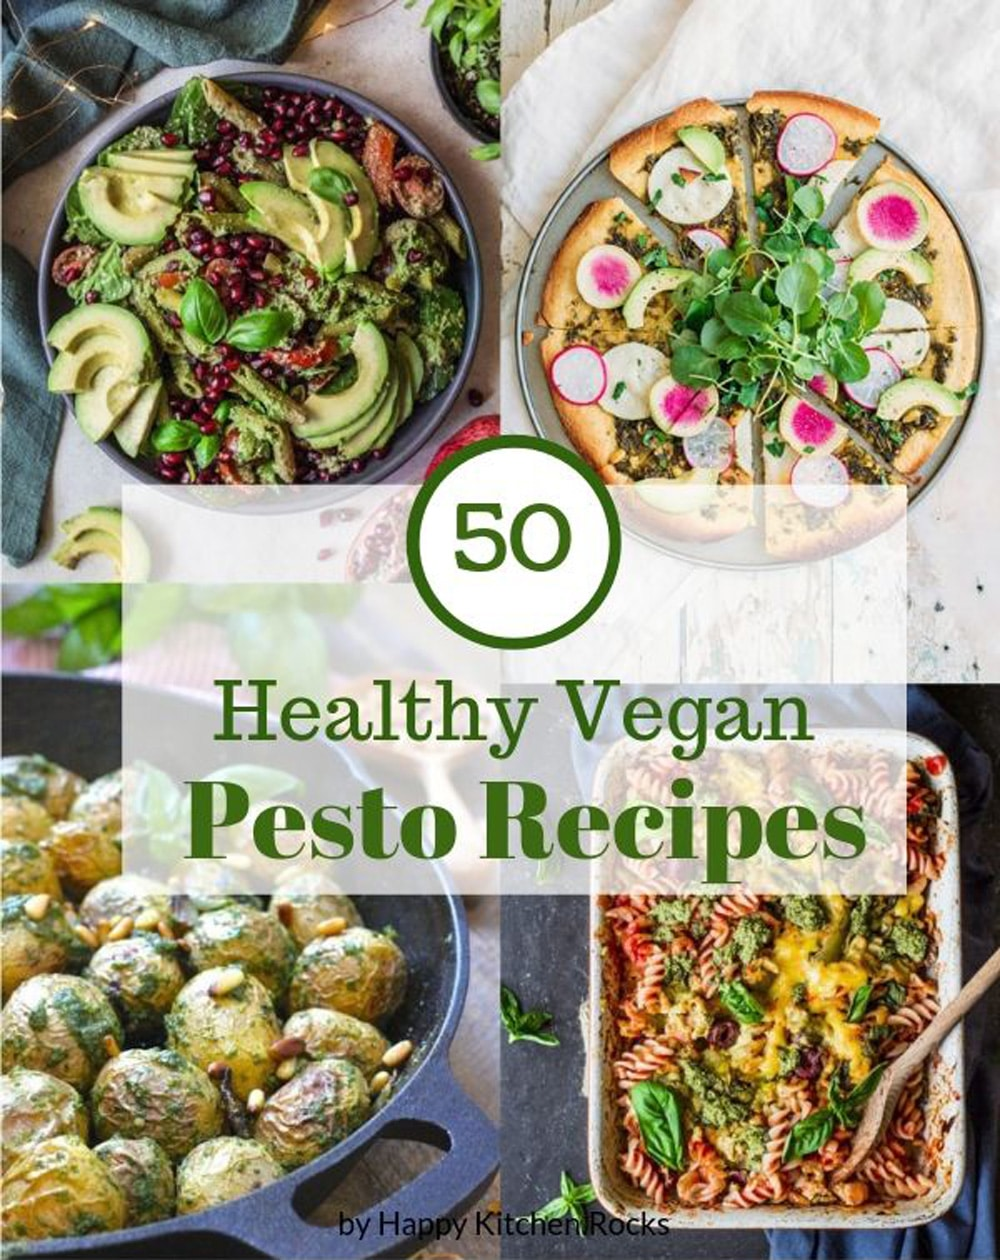 Vegan Recipes with Pesto Pinterest Image with Pesto Pastat Bake, Pesto Pizza, Pesto Potatoes and Salad